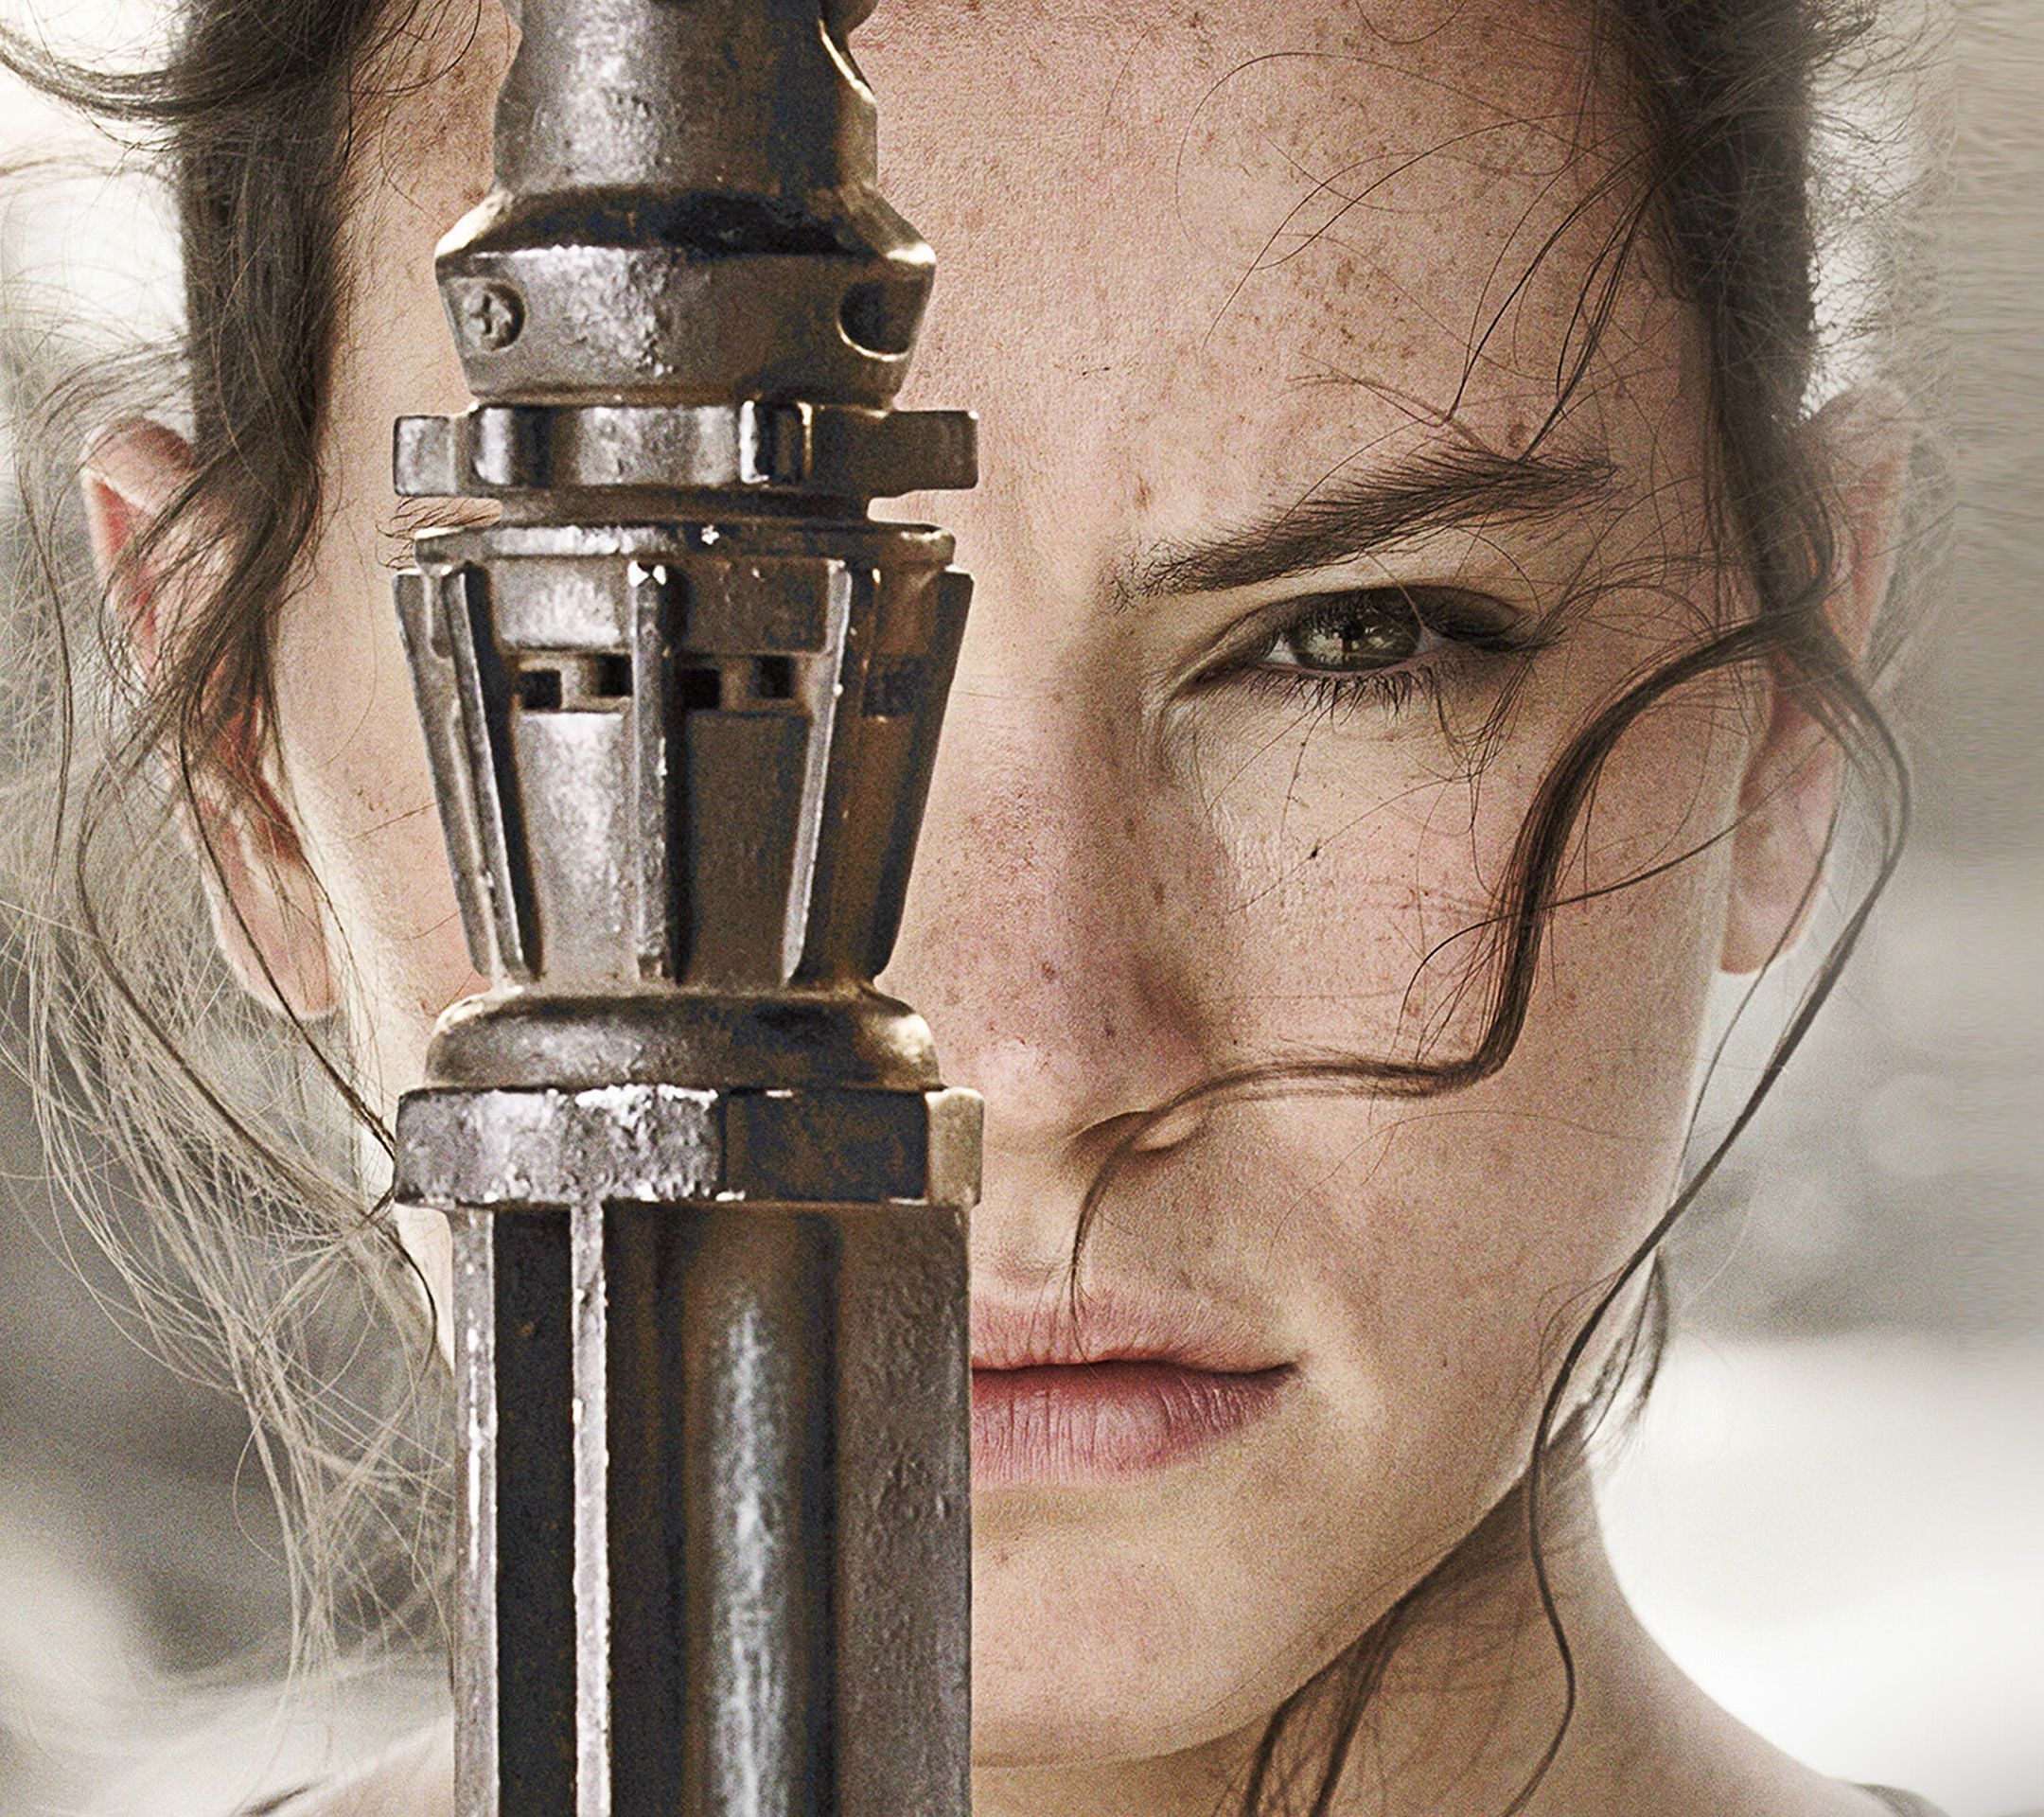 http://bit.ly/211fYcC - AndroidPapers.co wallpapers - an80-beauty-starwars-poster-art-face-film - Android, wallpaper